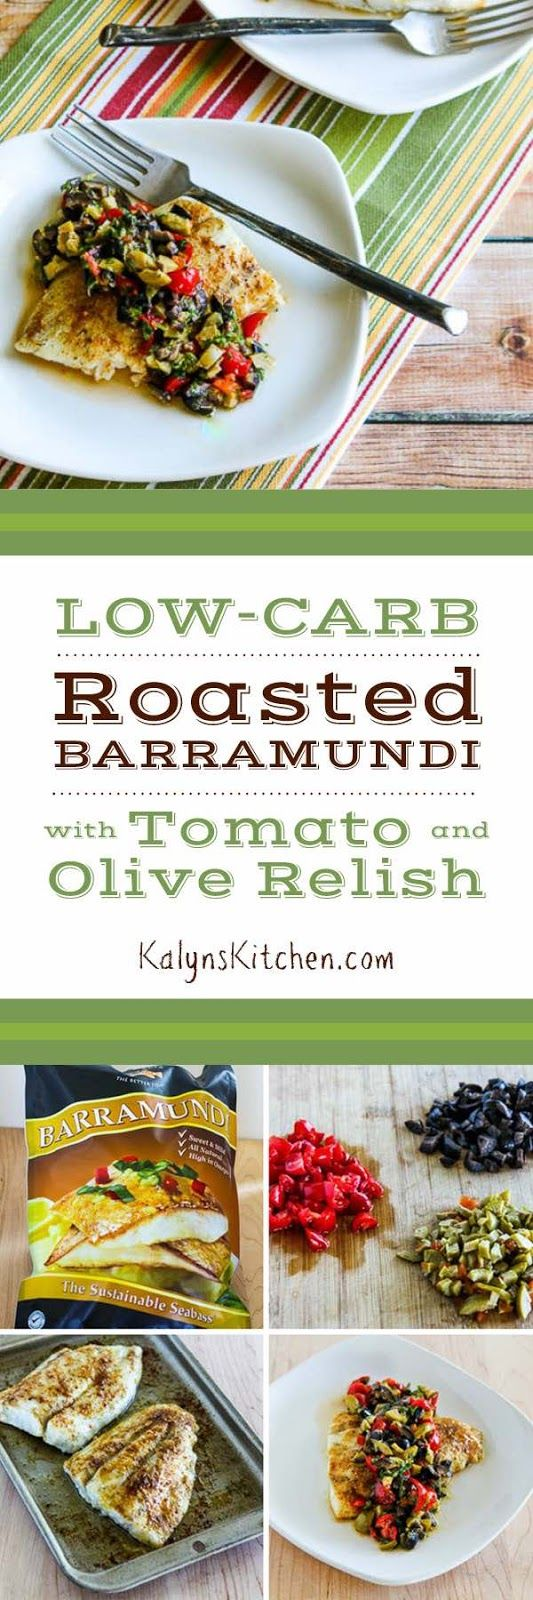 Low-Carb Roasted Barramundi with Tomato and Olive Relish found on KalynsKitchen.com